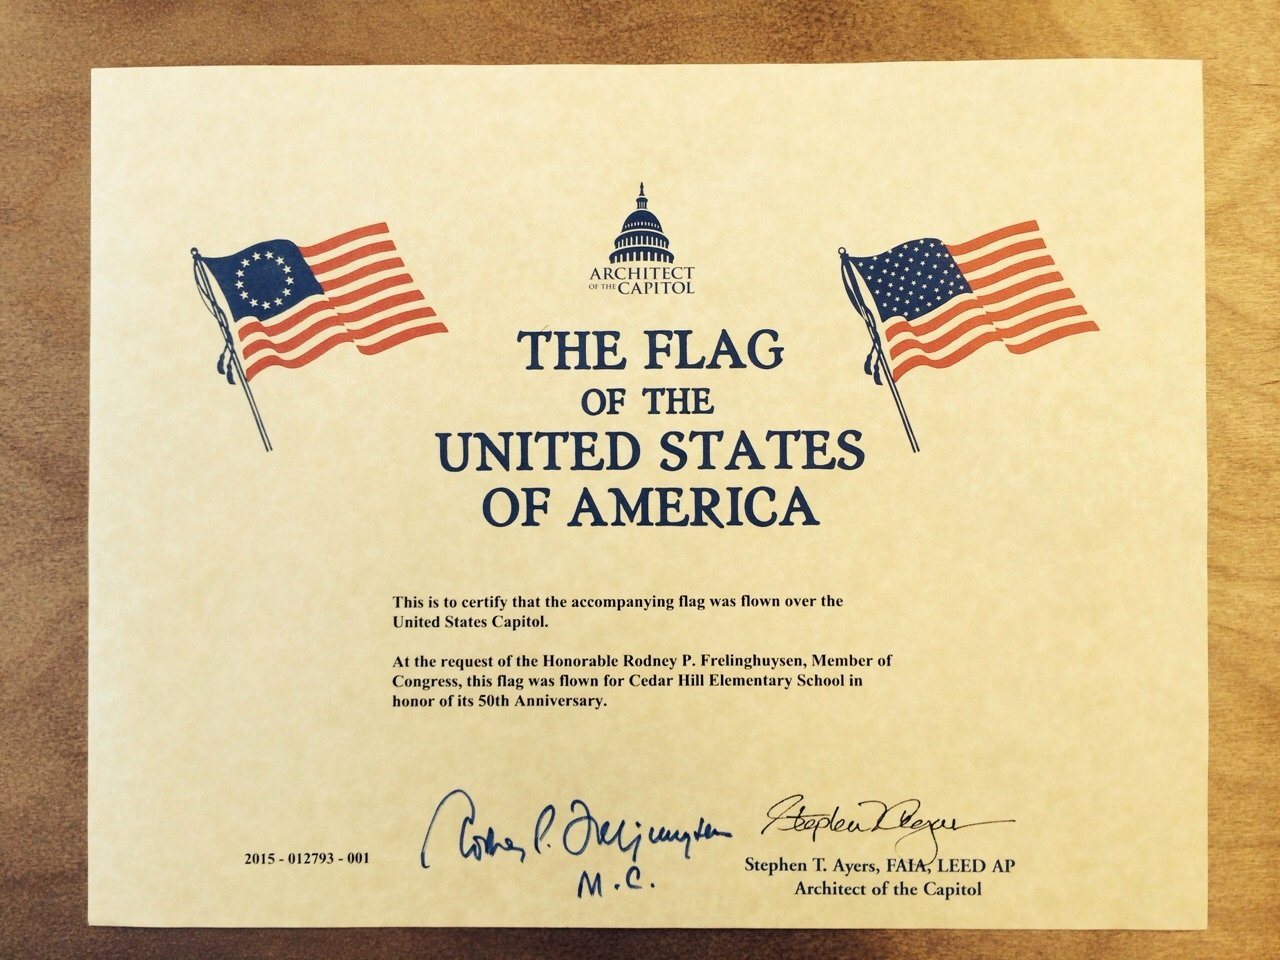 Flag Flying Certificate Template Lovely Flag Flown Over Us Capitol In Honor Of Cedar Hill S 50th